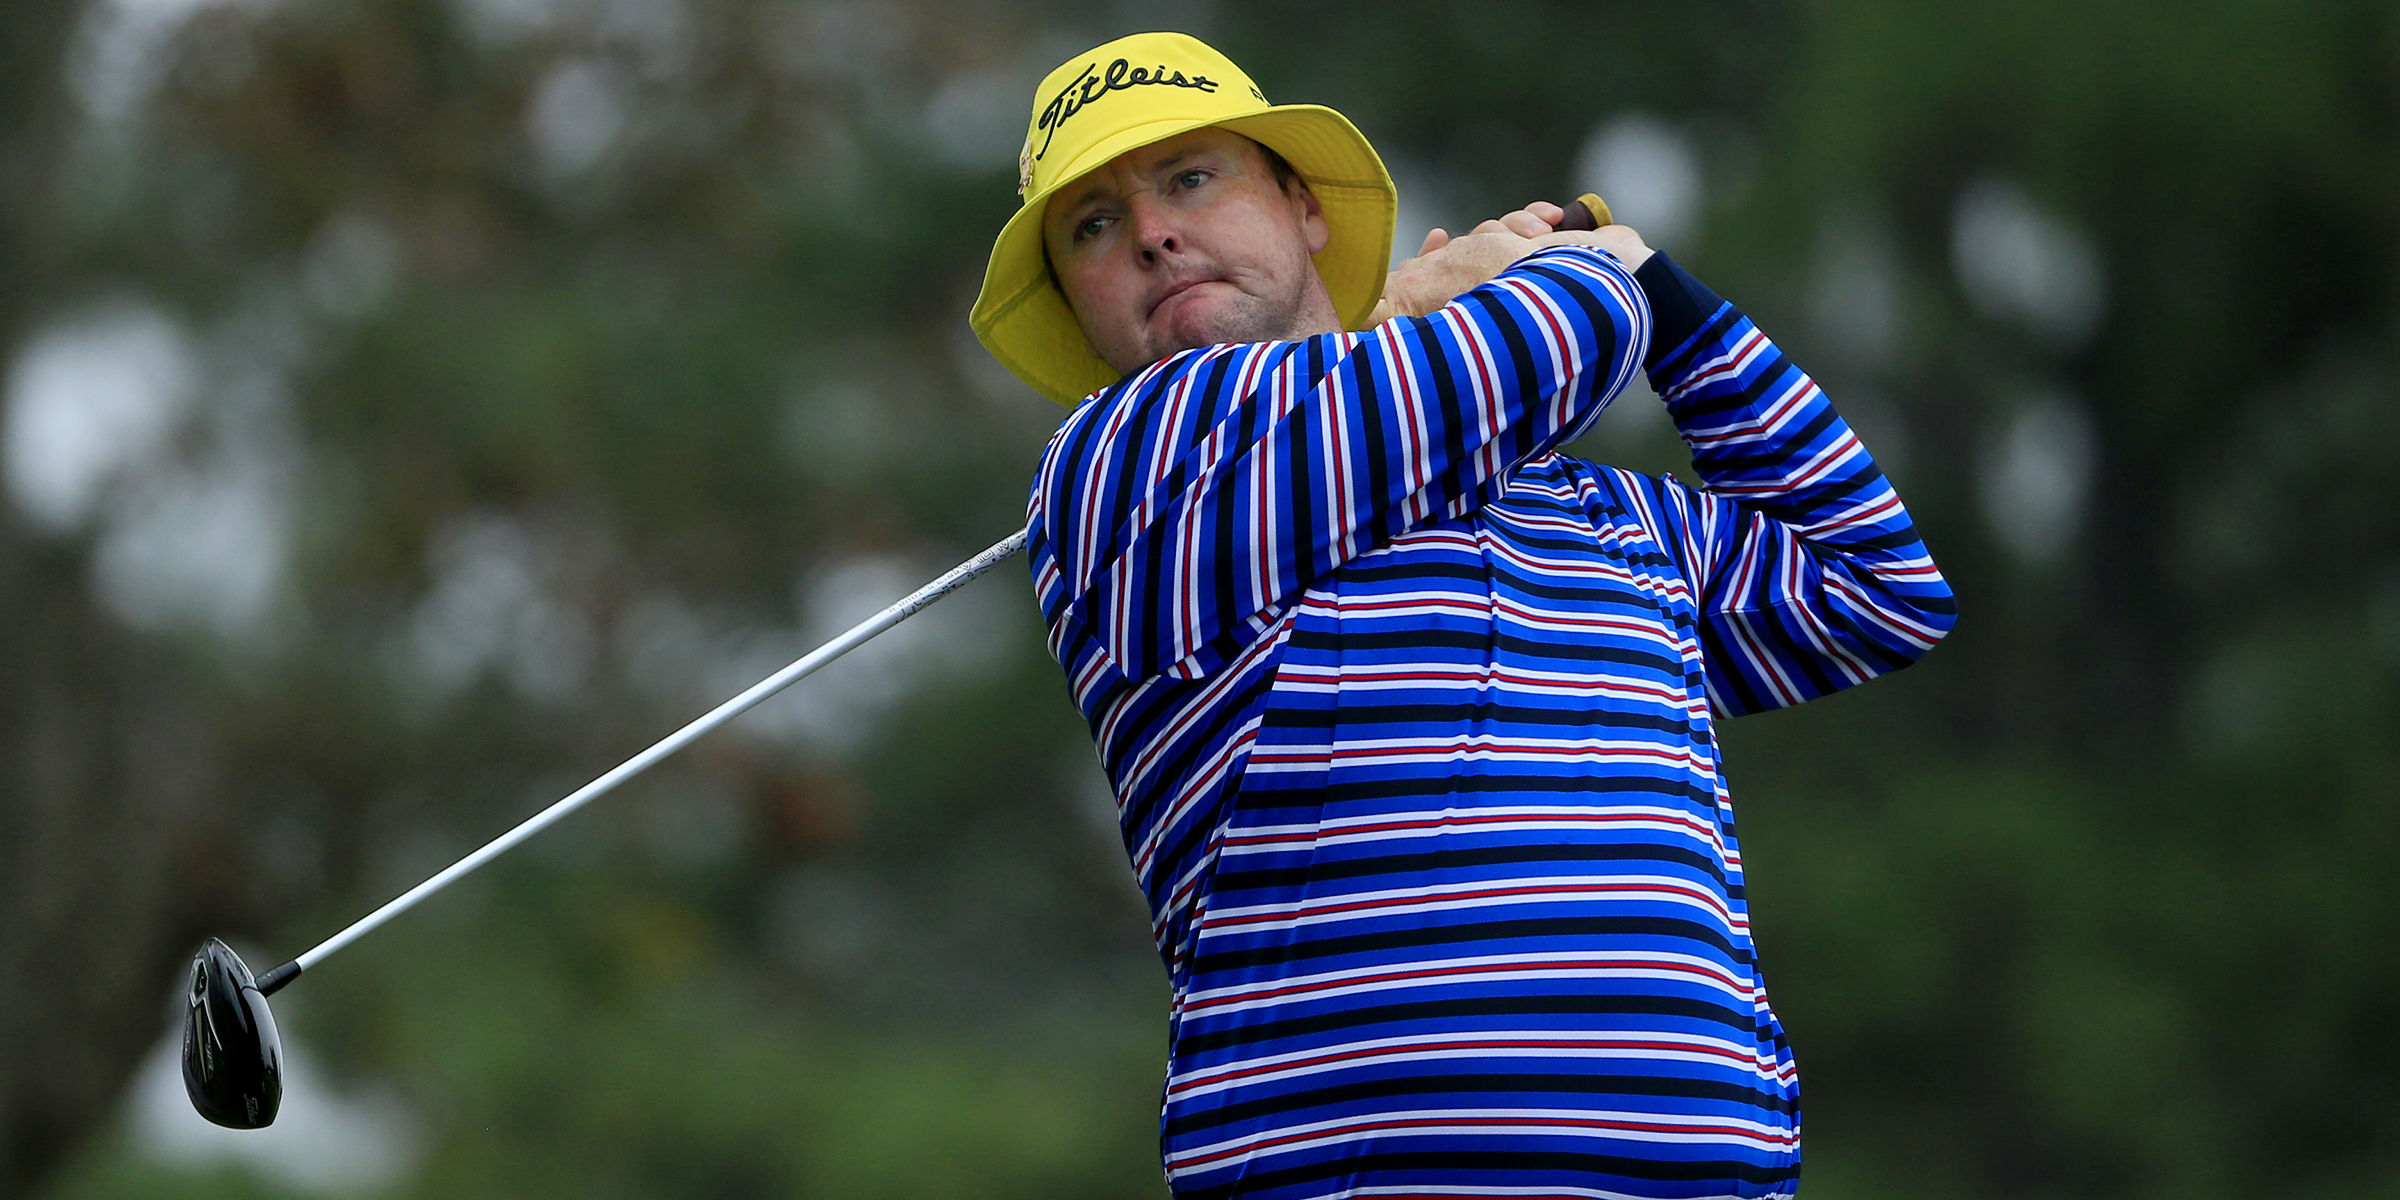 d05e0979b93 Australian pro golfer Jarrod Lyle dies at 36 from cancer